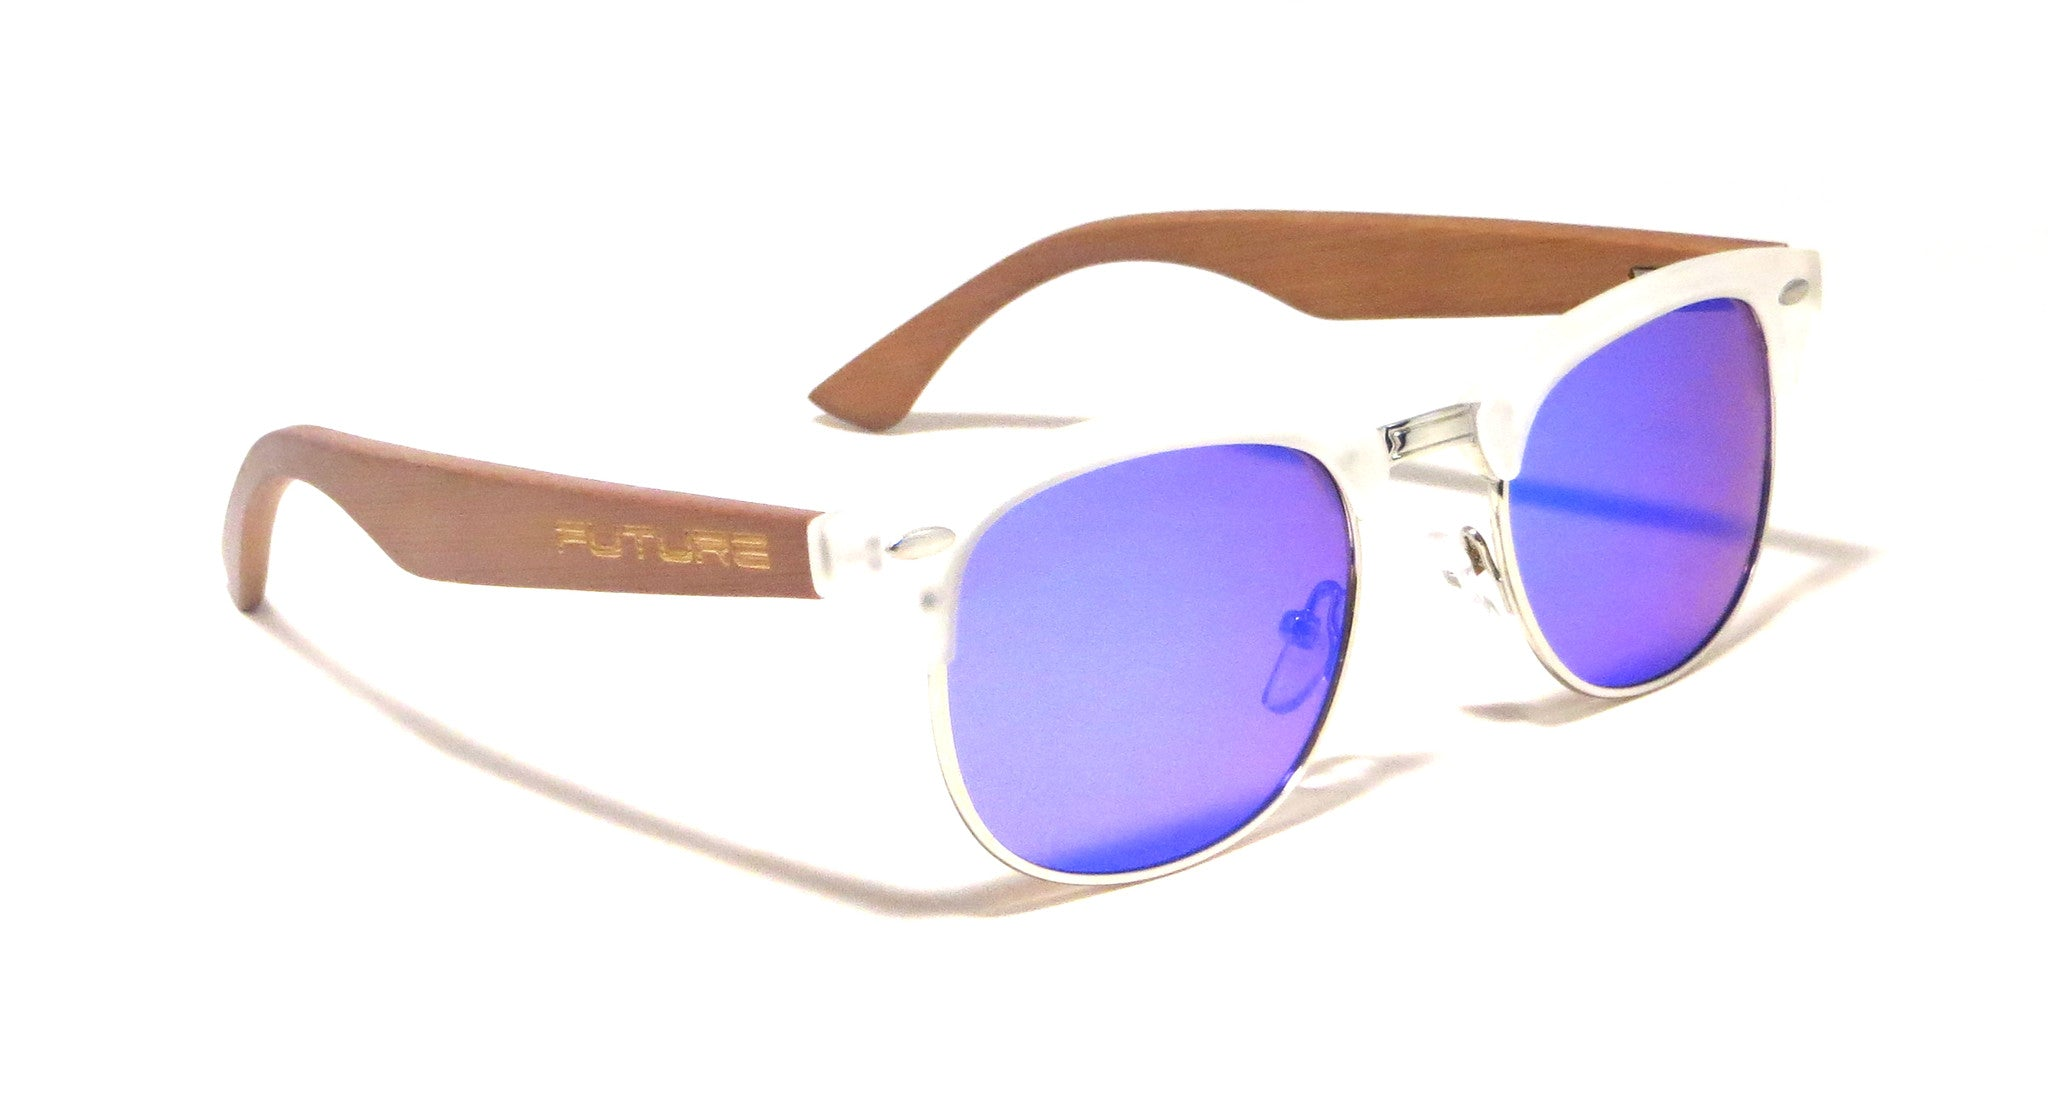 Translucent & Polarized Amethyst Blue - Future Timeless - Future-Wear - Carbon Sunglasses